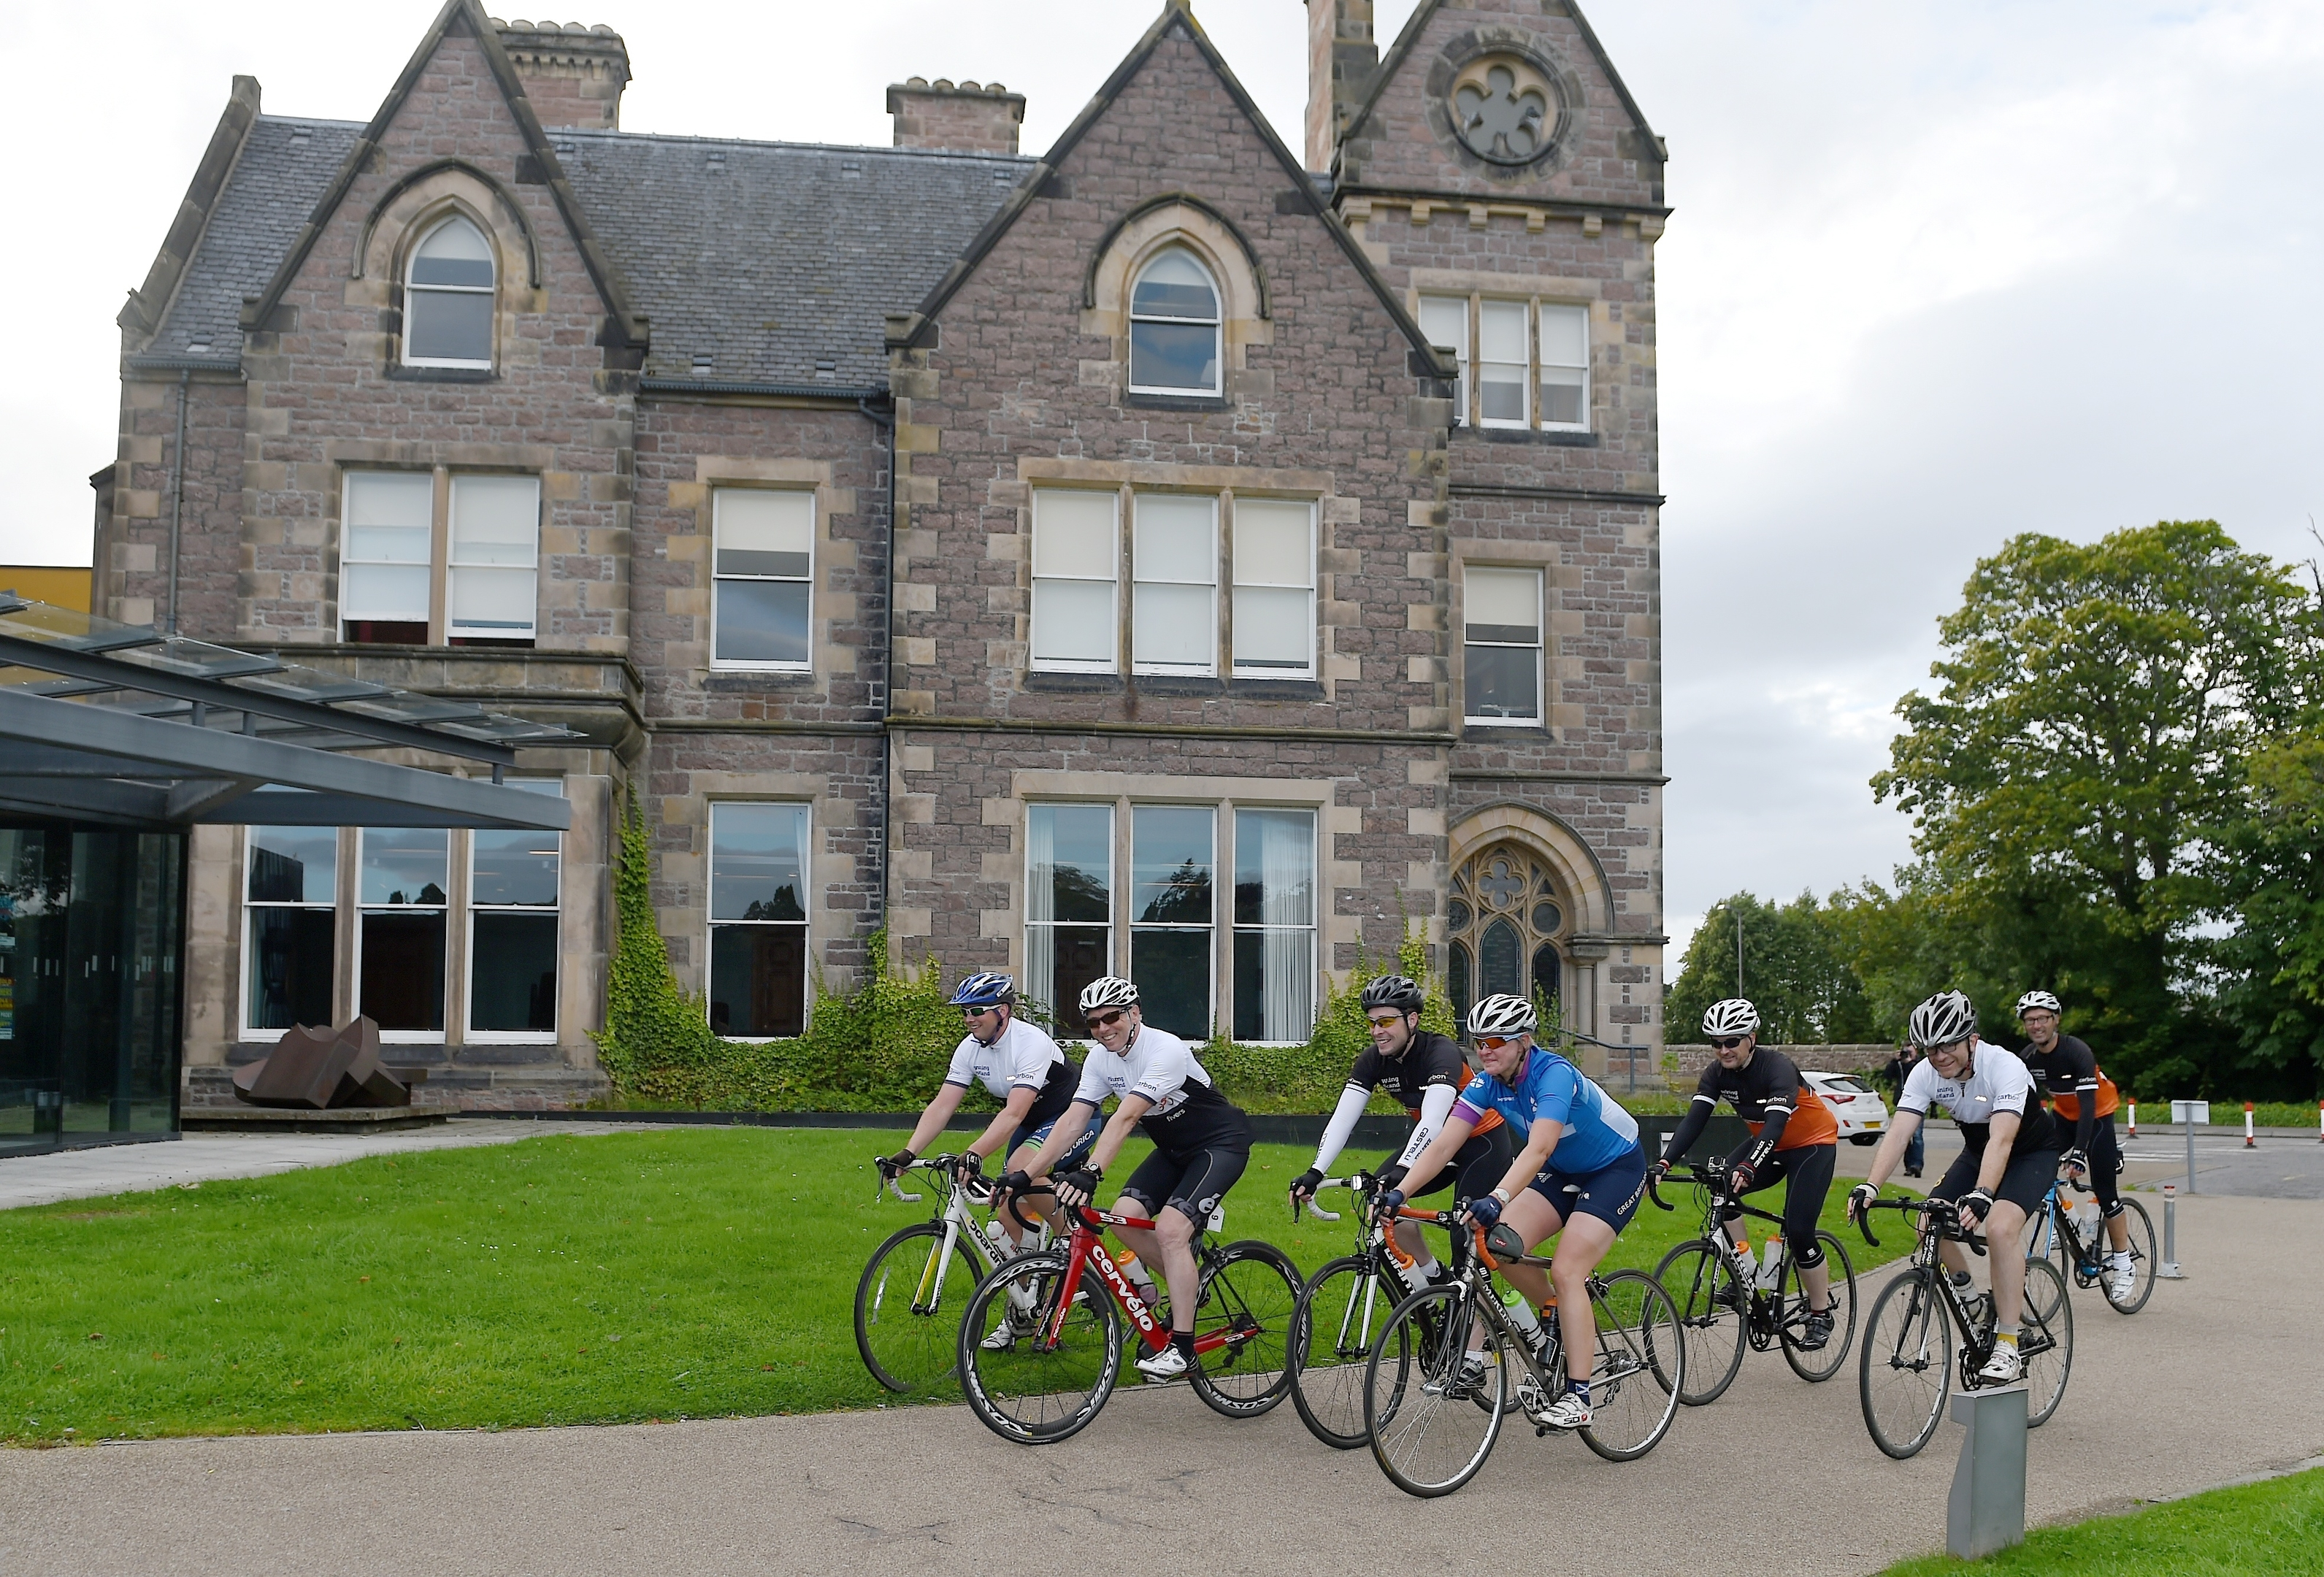 The cyclists arrive outside Eden Court Theatre in Inverness at the end of their 500 mile trip.